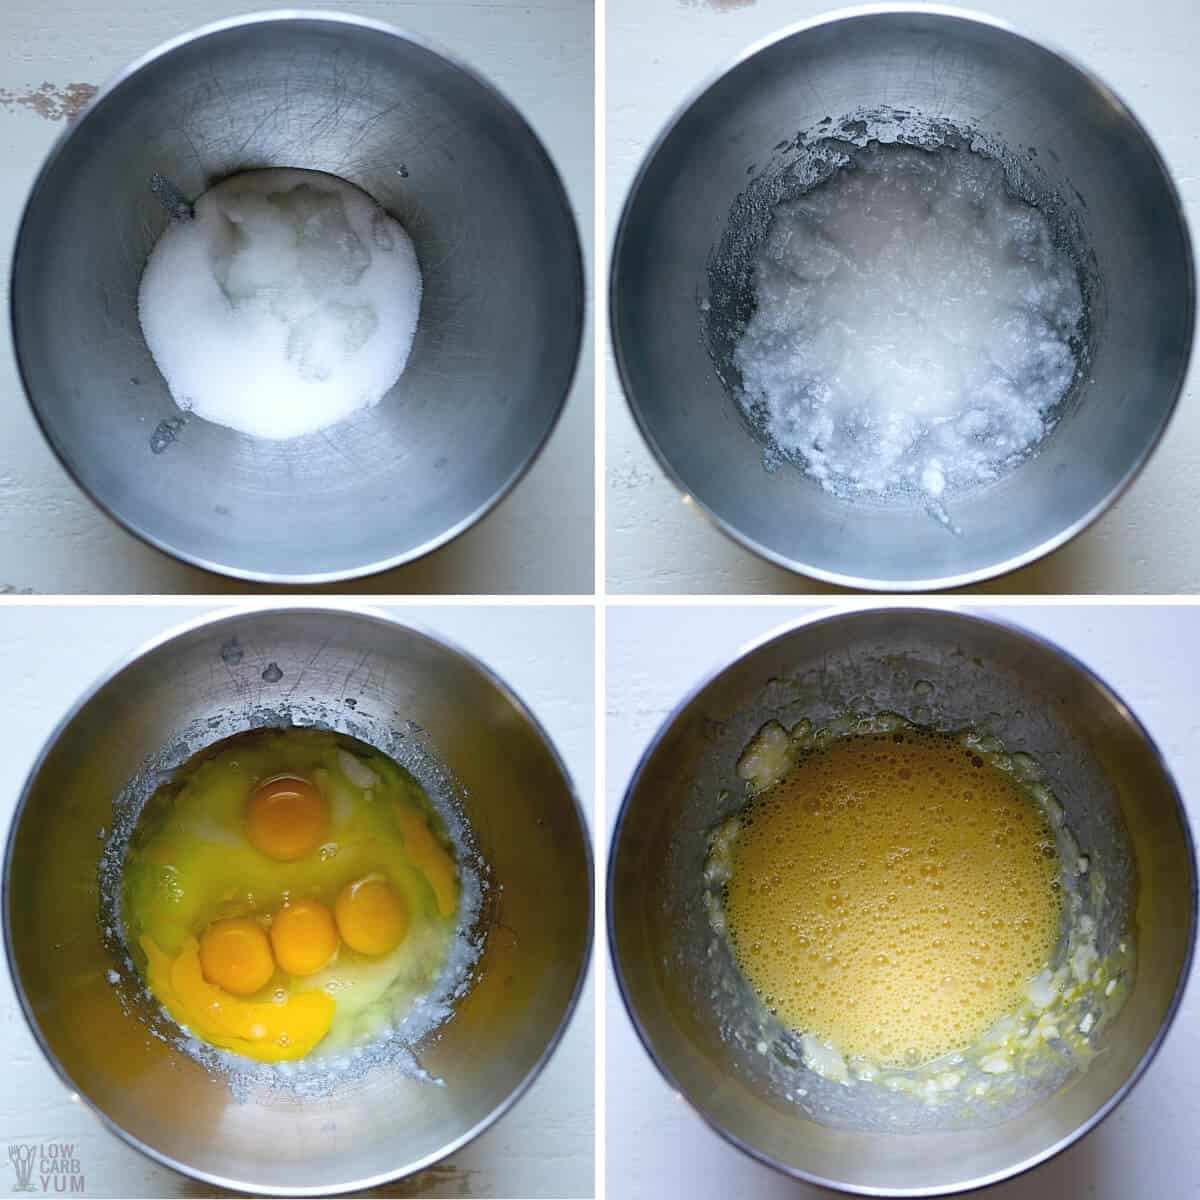 initial steps for muffin batter